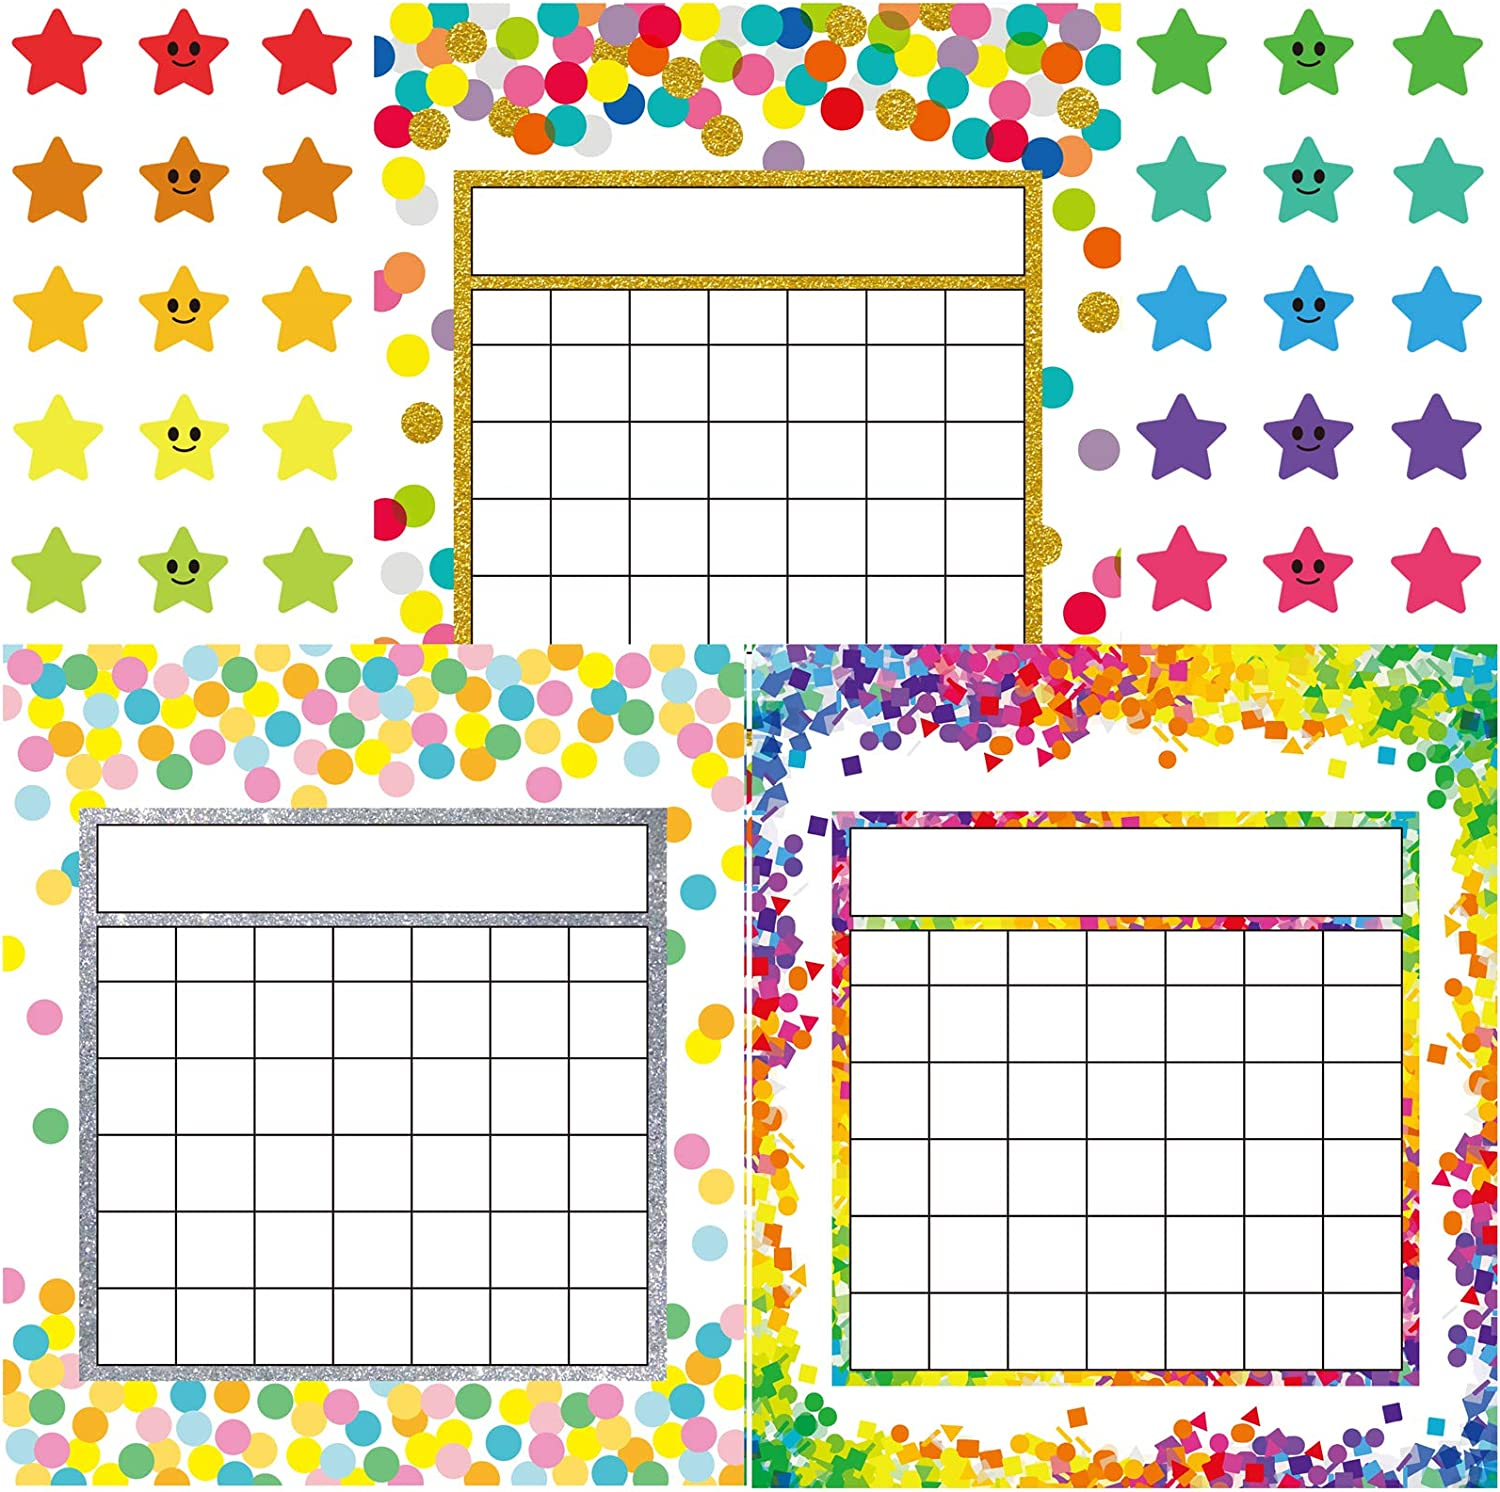 Youngever 81 Pack Classroom Incentive Chart in 3 Designs with 480 Star Stickers, Confetti Design